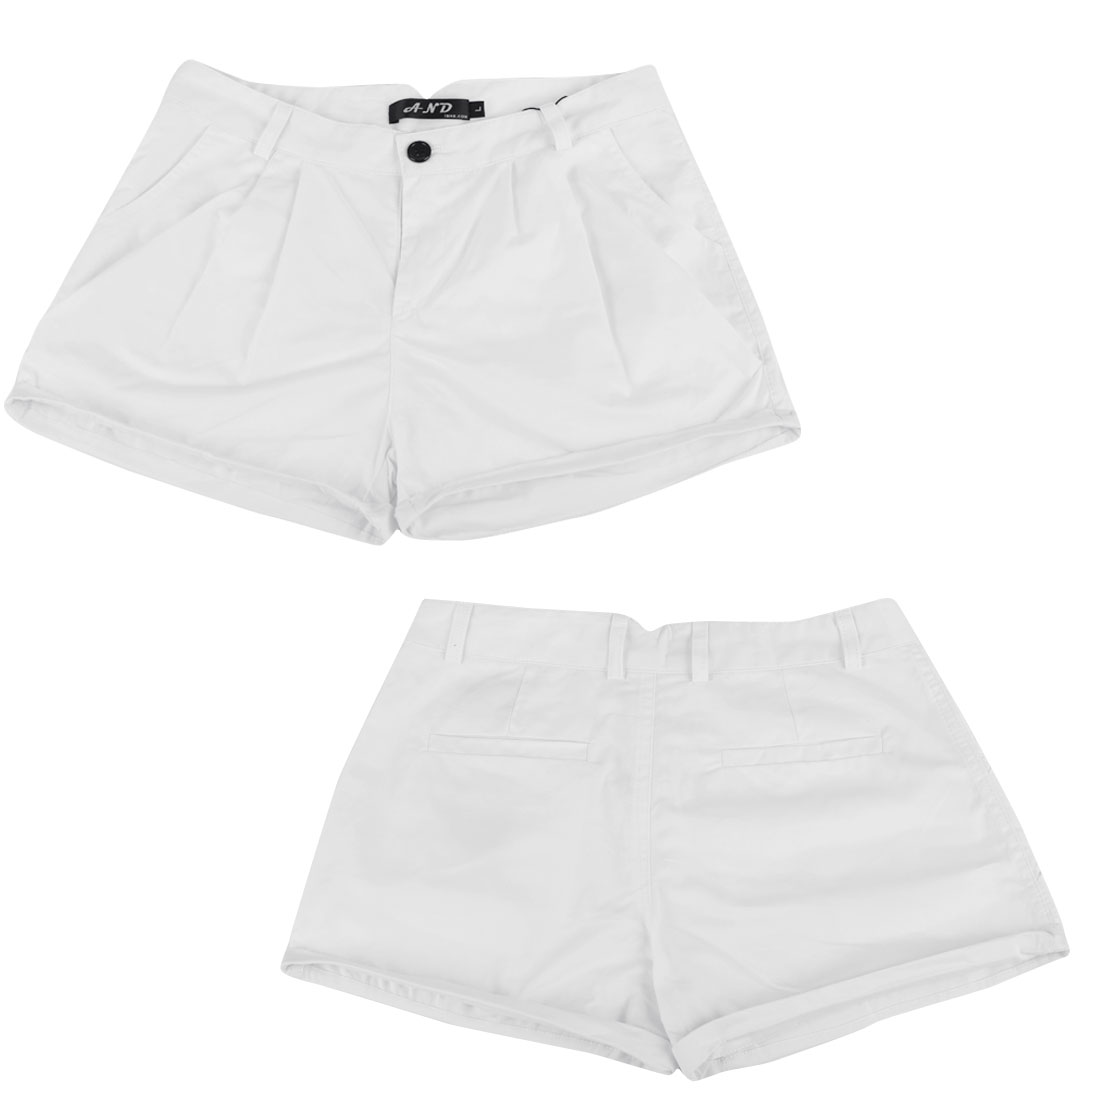 Ladies High Waist Slant Pockets Rolled Cuffs Zip Fly Shorts White S